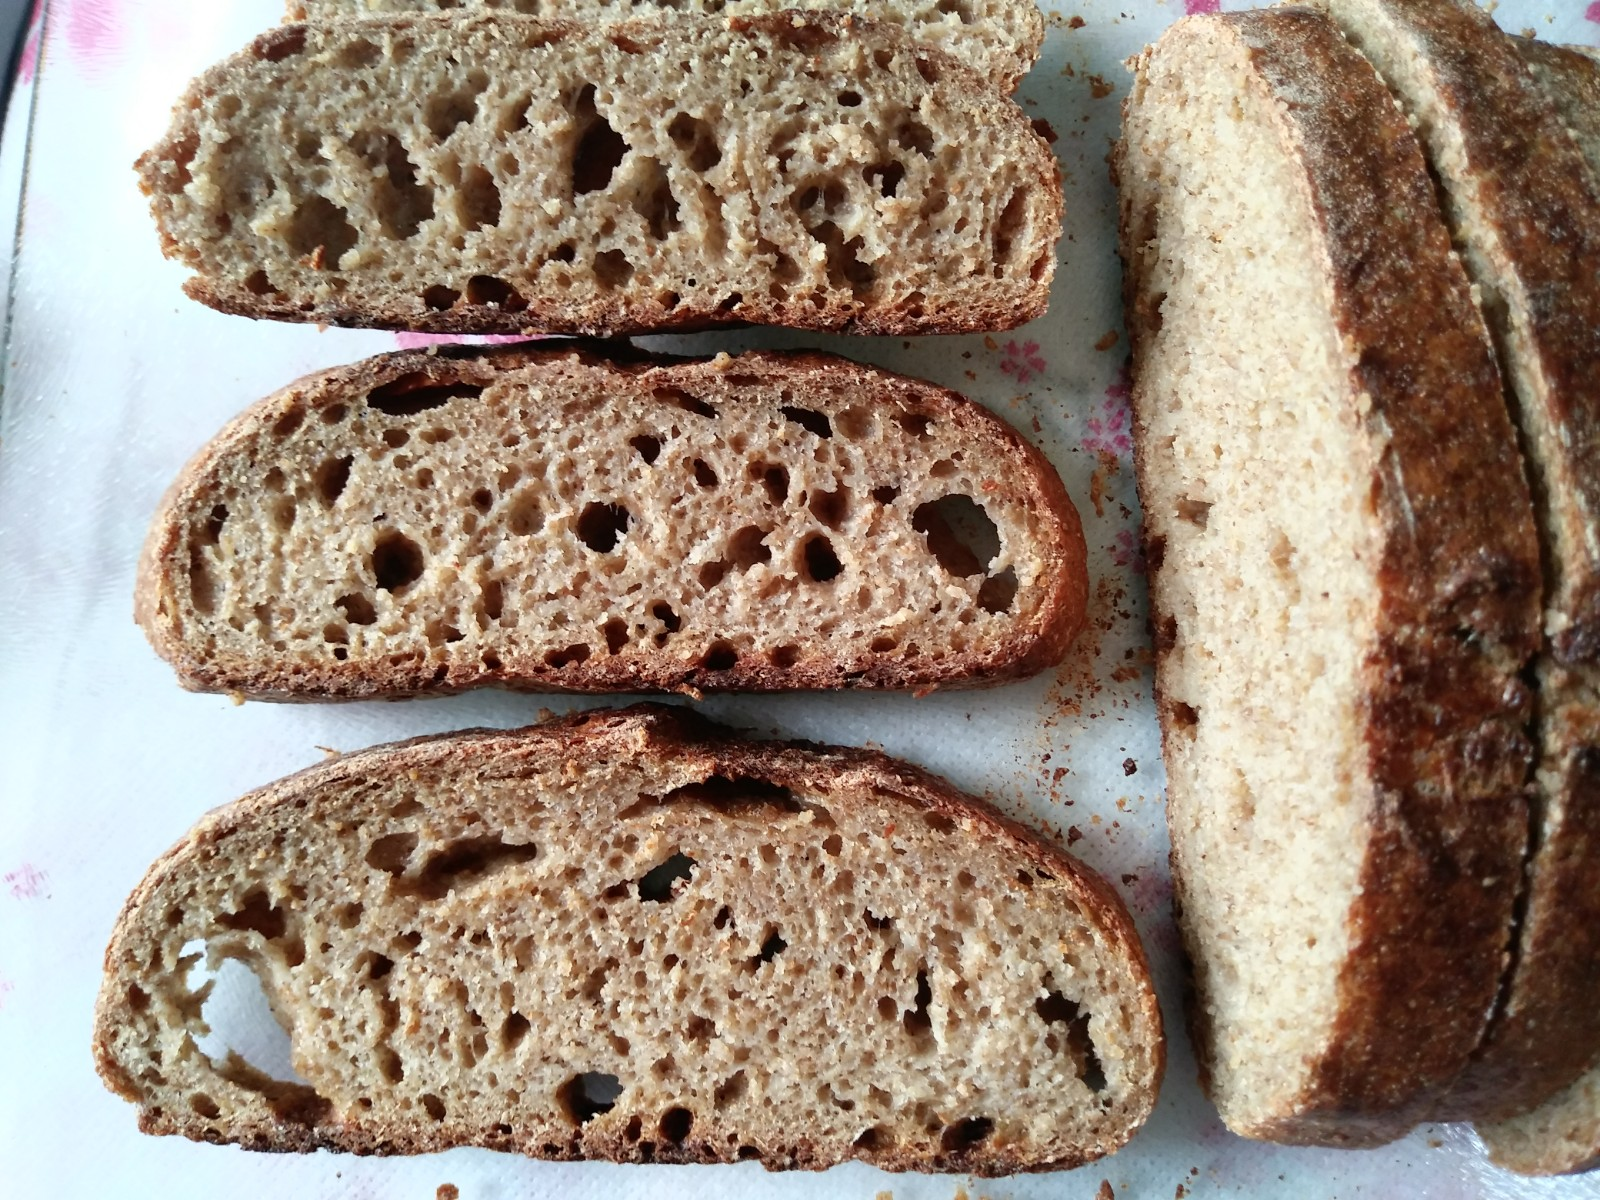 For Those on a 100% Whole Wheat No Added Gluten Mission